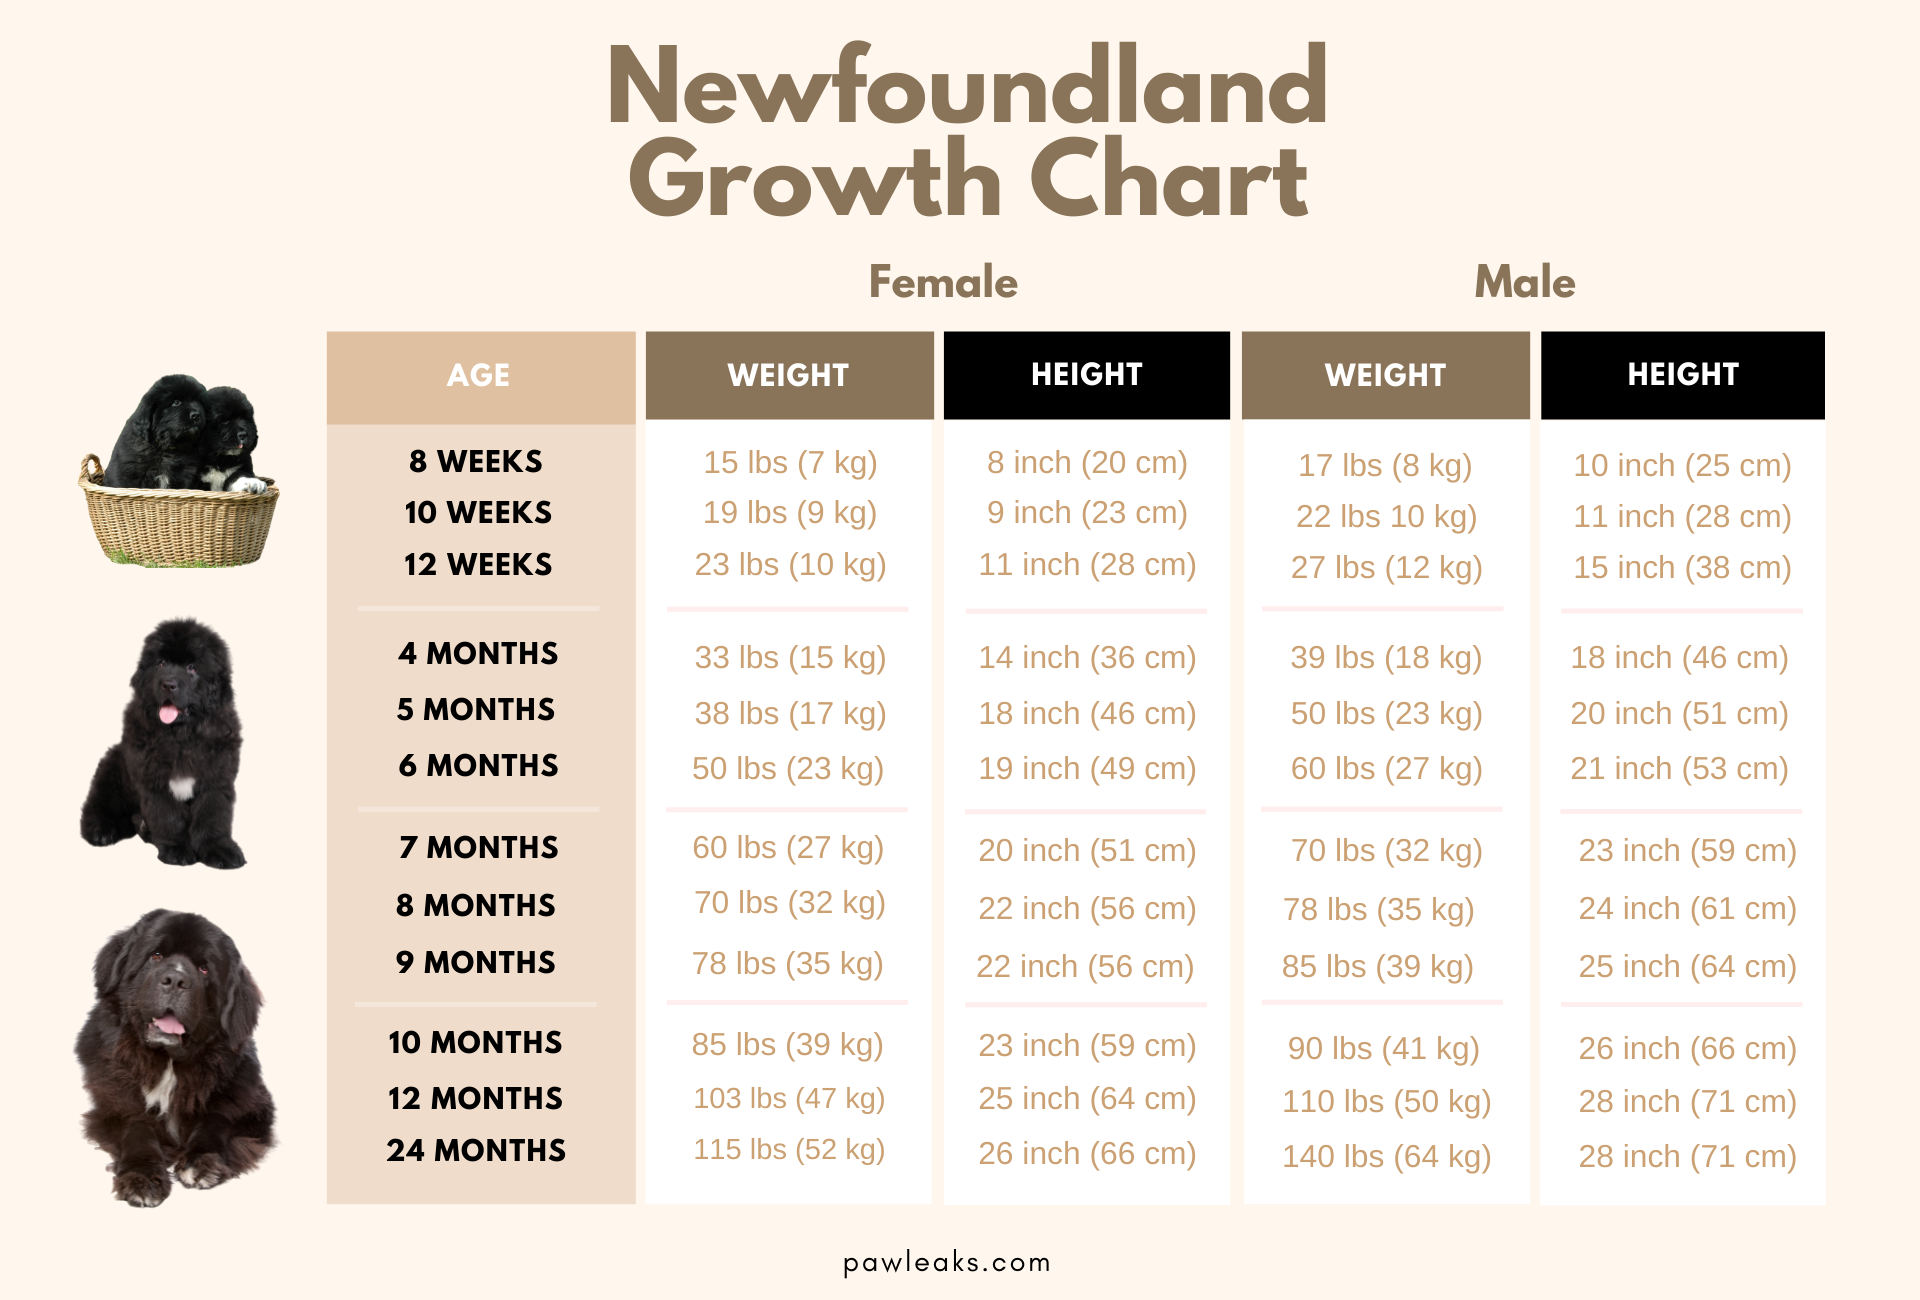 Newfoundland growth chart depicting the age and corresponding weight and height, sorted by male and female.